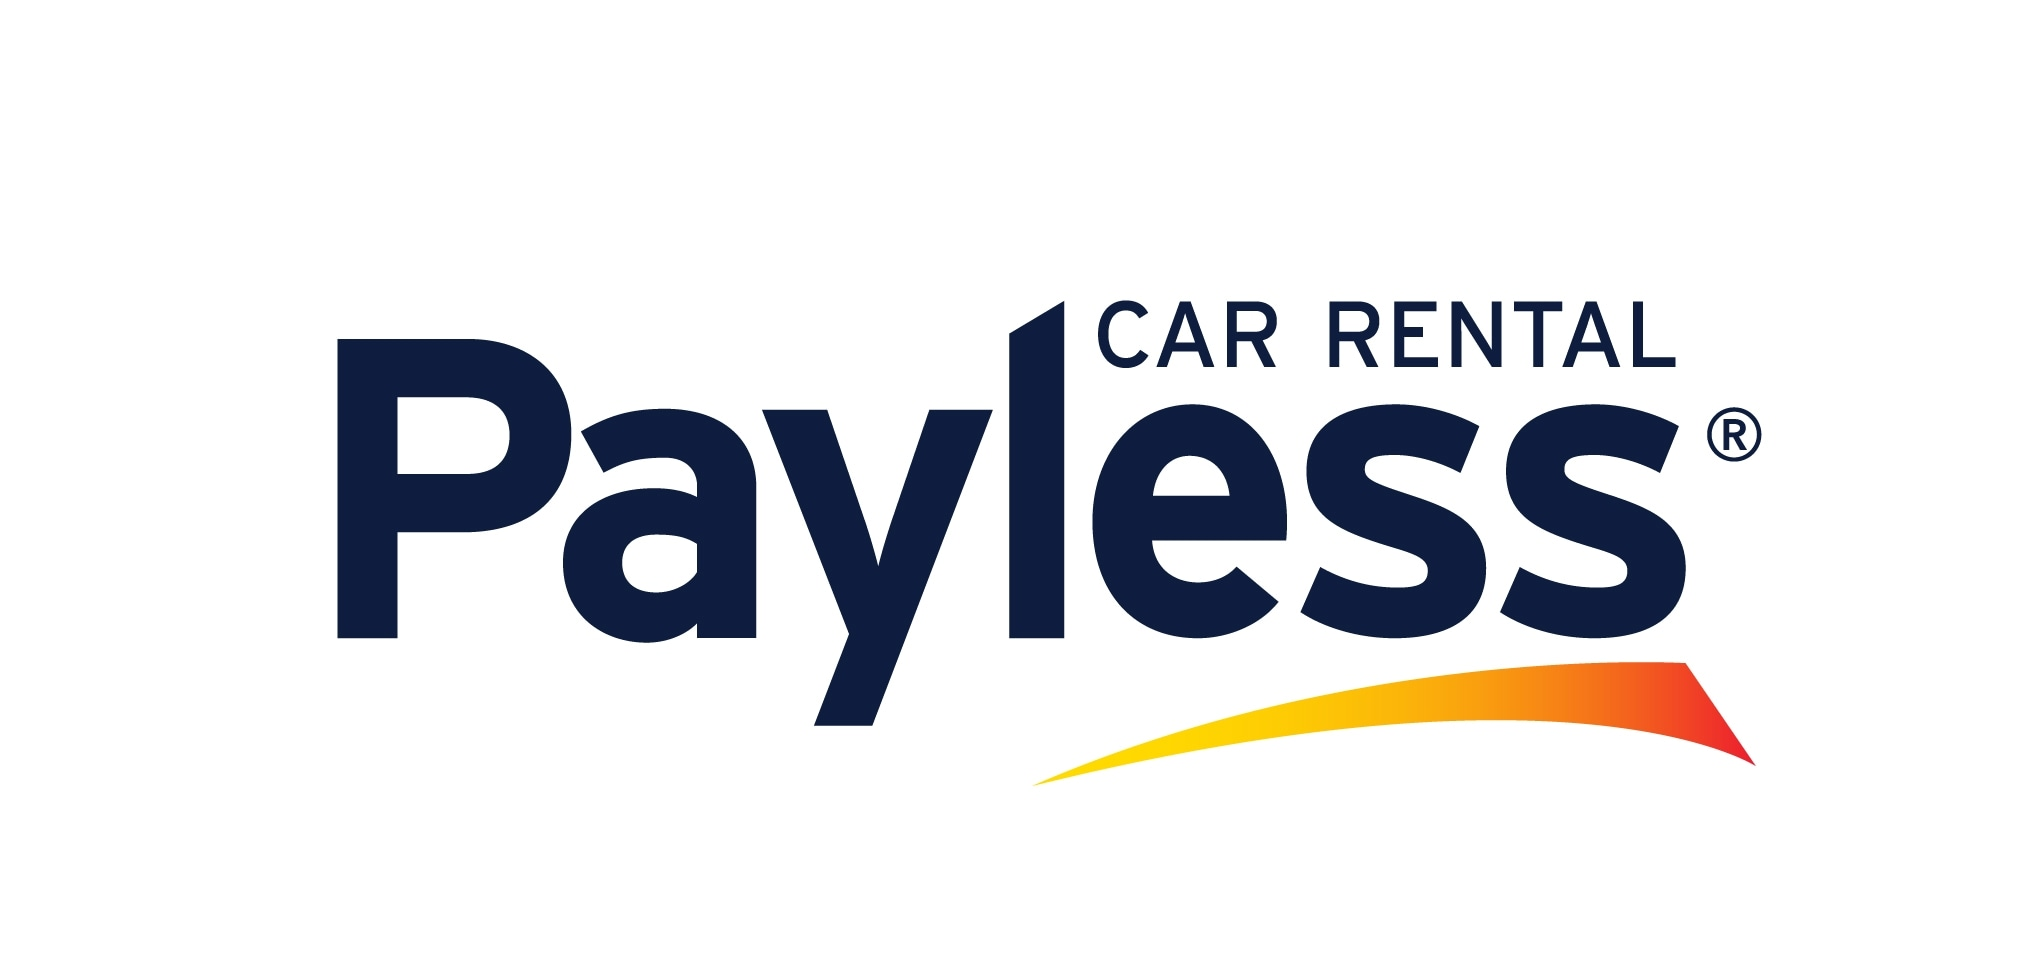 Payless Car Rental promo codes